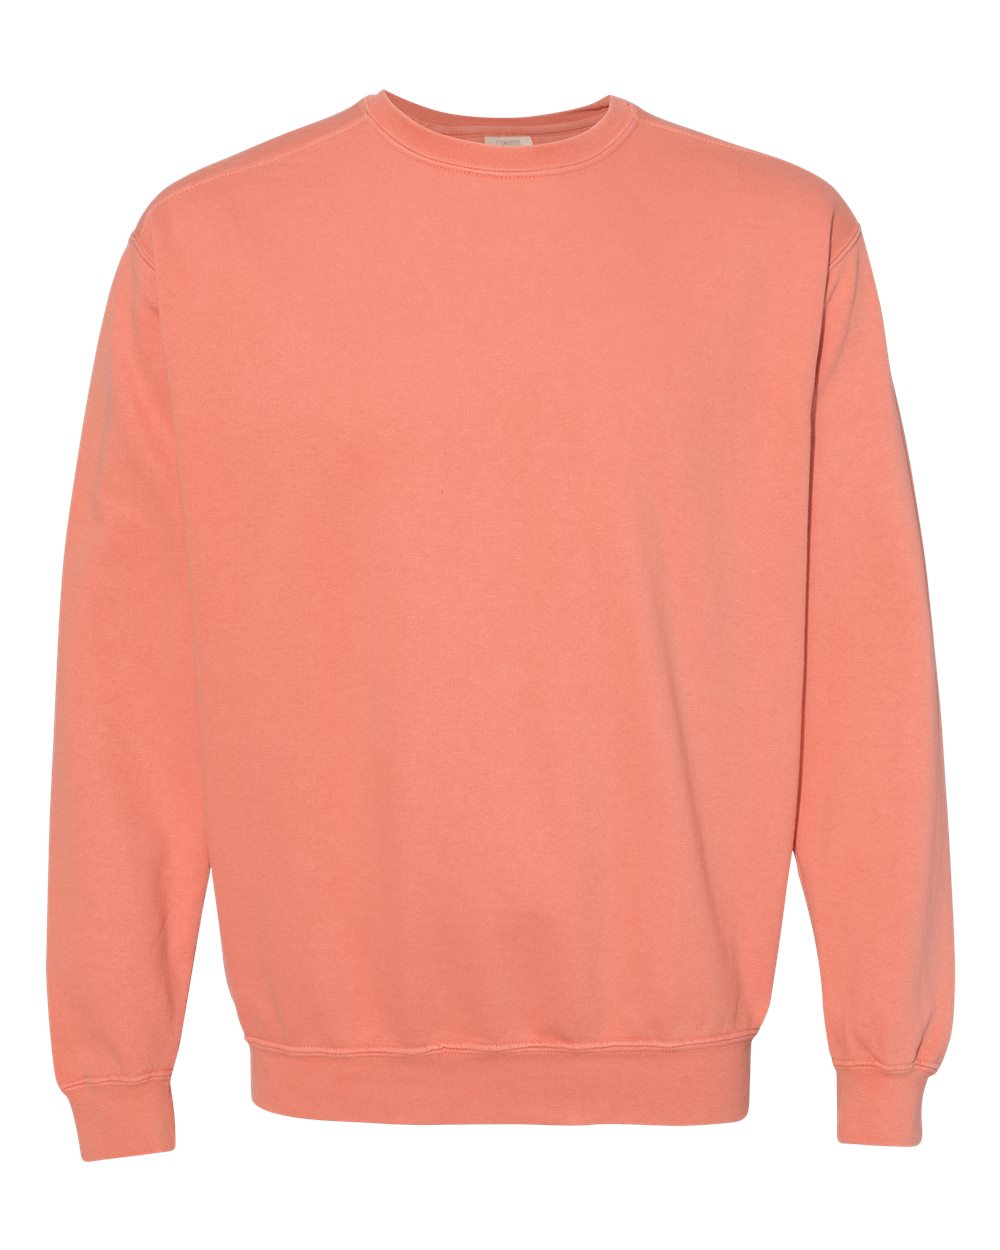 Comfort-Colors-Mens-Garment-Dyed-Ringspun-Crewneck-Sweatshirt-1566-up-to-3XL miniature 54